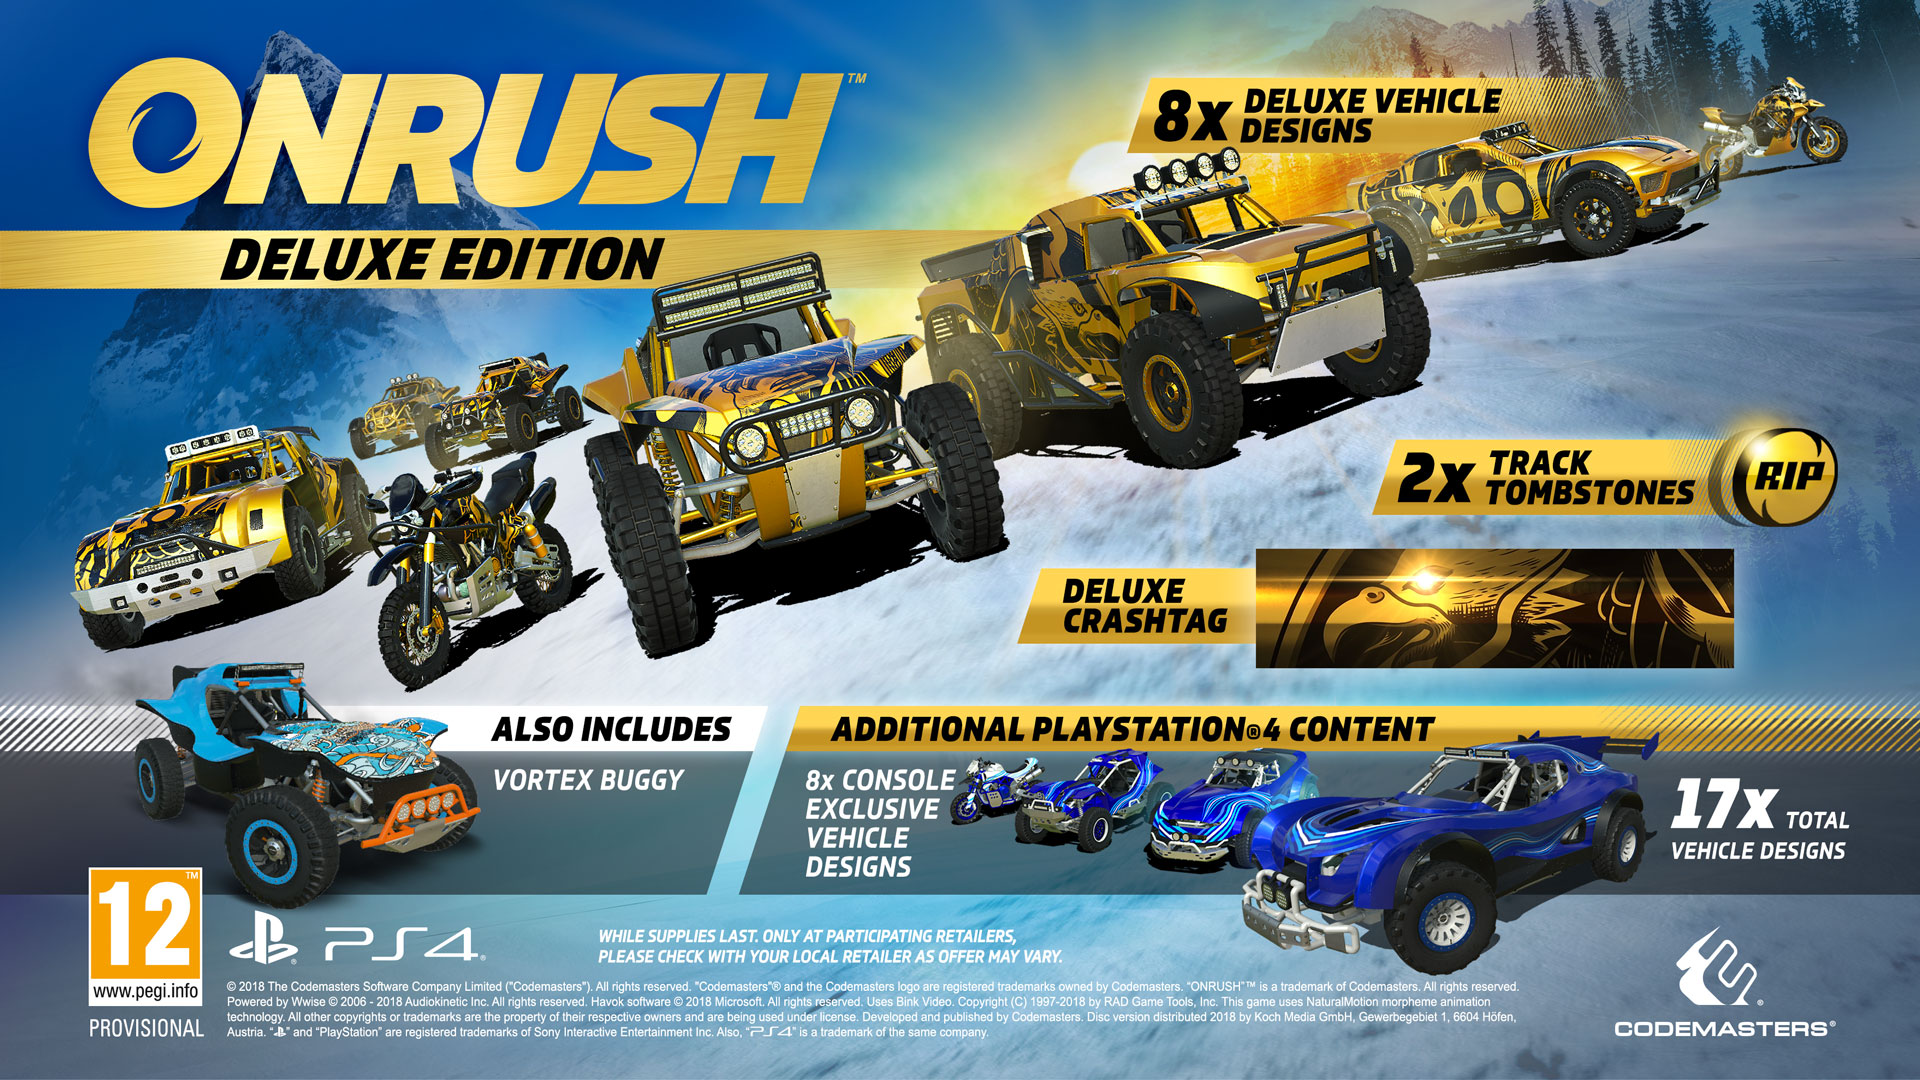 Onrush deluxe edition